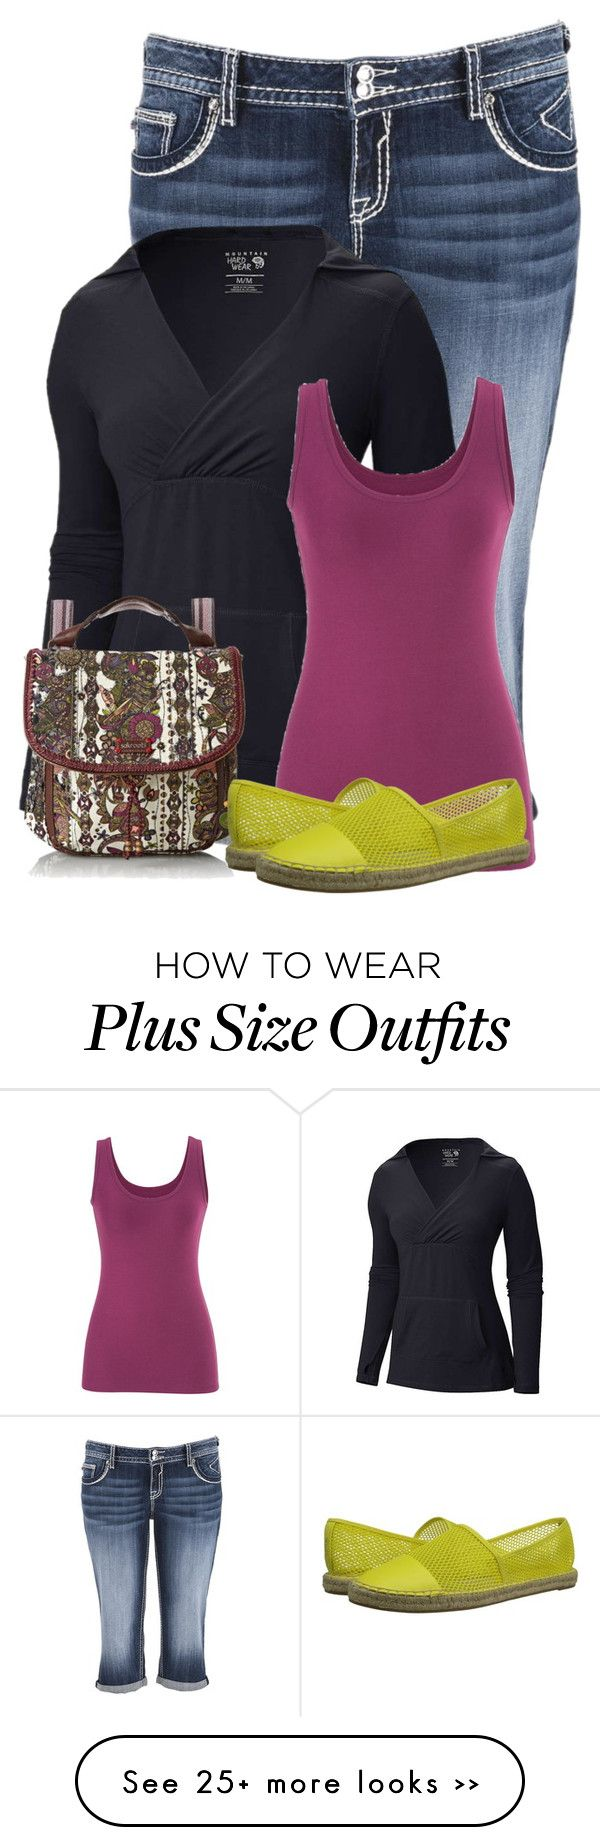 """Untitled #9013"" by nanette-253 on Polyvore featuring maurices, Mountain Hardwear, Sakroots and Circus By Sam Edelman"